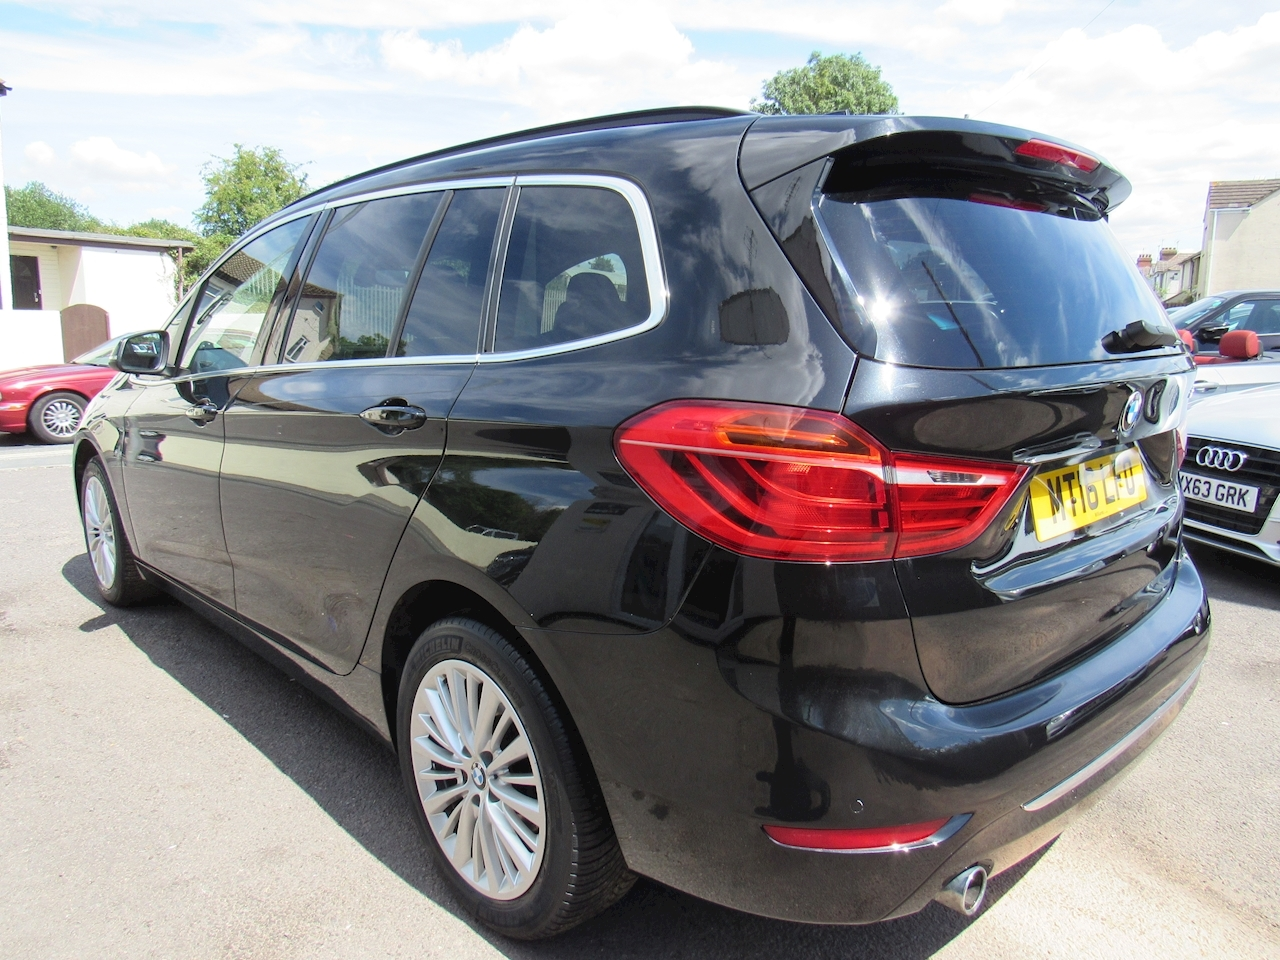 BMW 2 Series Gran Tourer 216d Luxury Gran Tourer Gran Tourer 1.5 Automatic Diesel